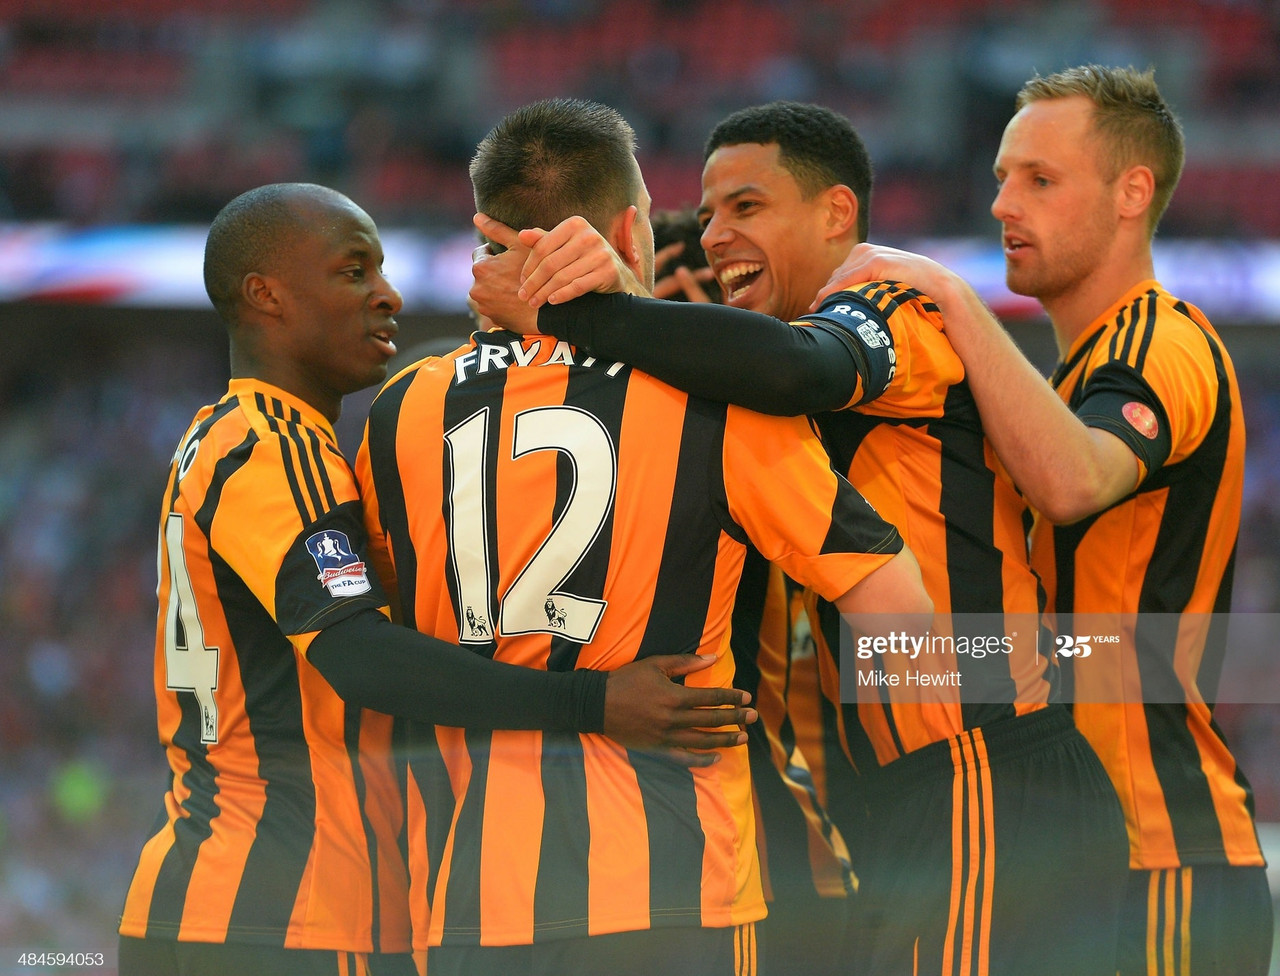 Hull City's greatest season: Was the 2013/14 campaign the best in recent history?